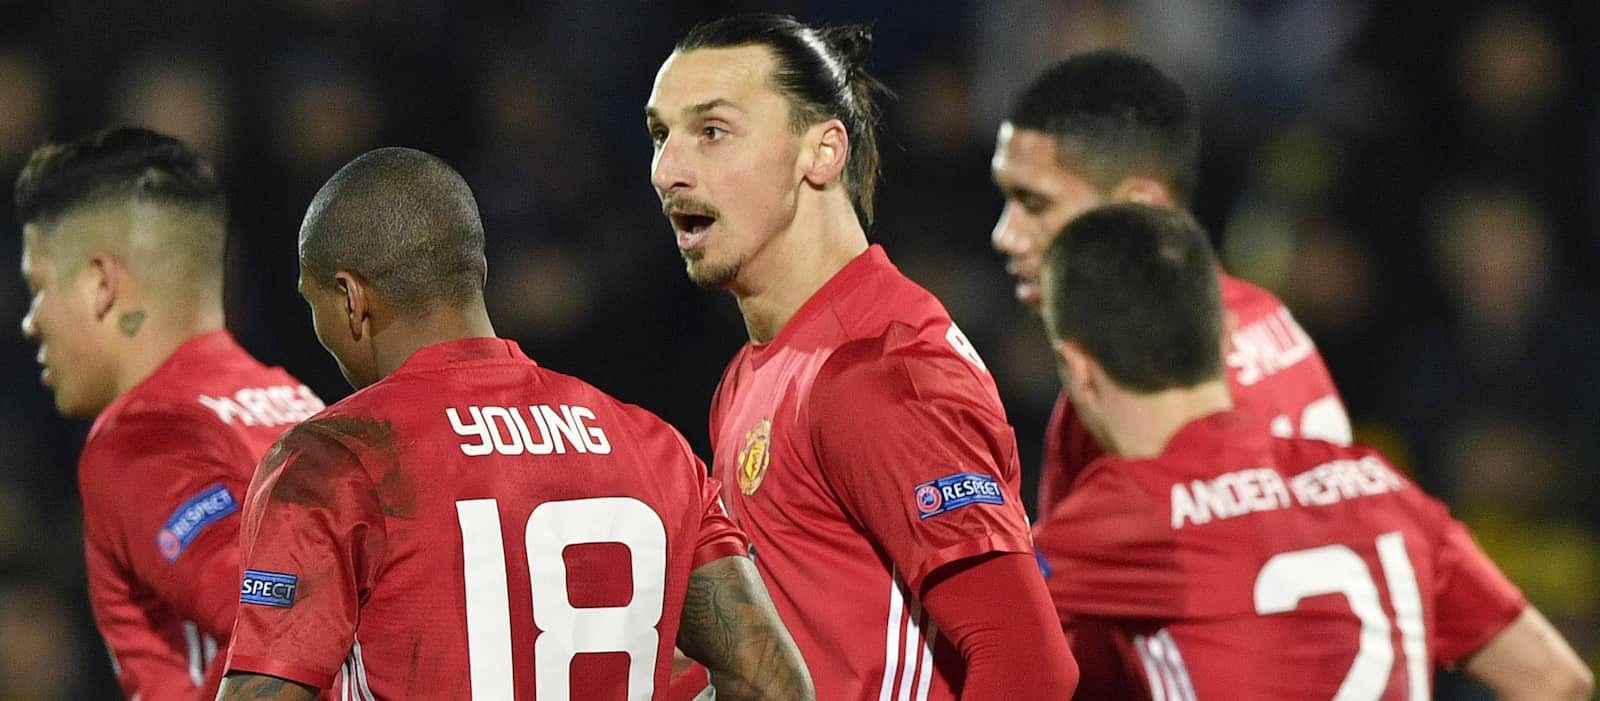 Zlatan Ibrahimovic explains extra motivation to beat Pep Guardiola's Manchester City